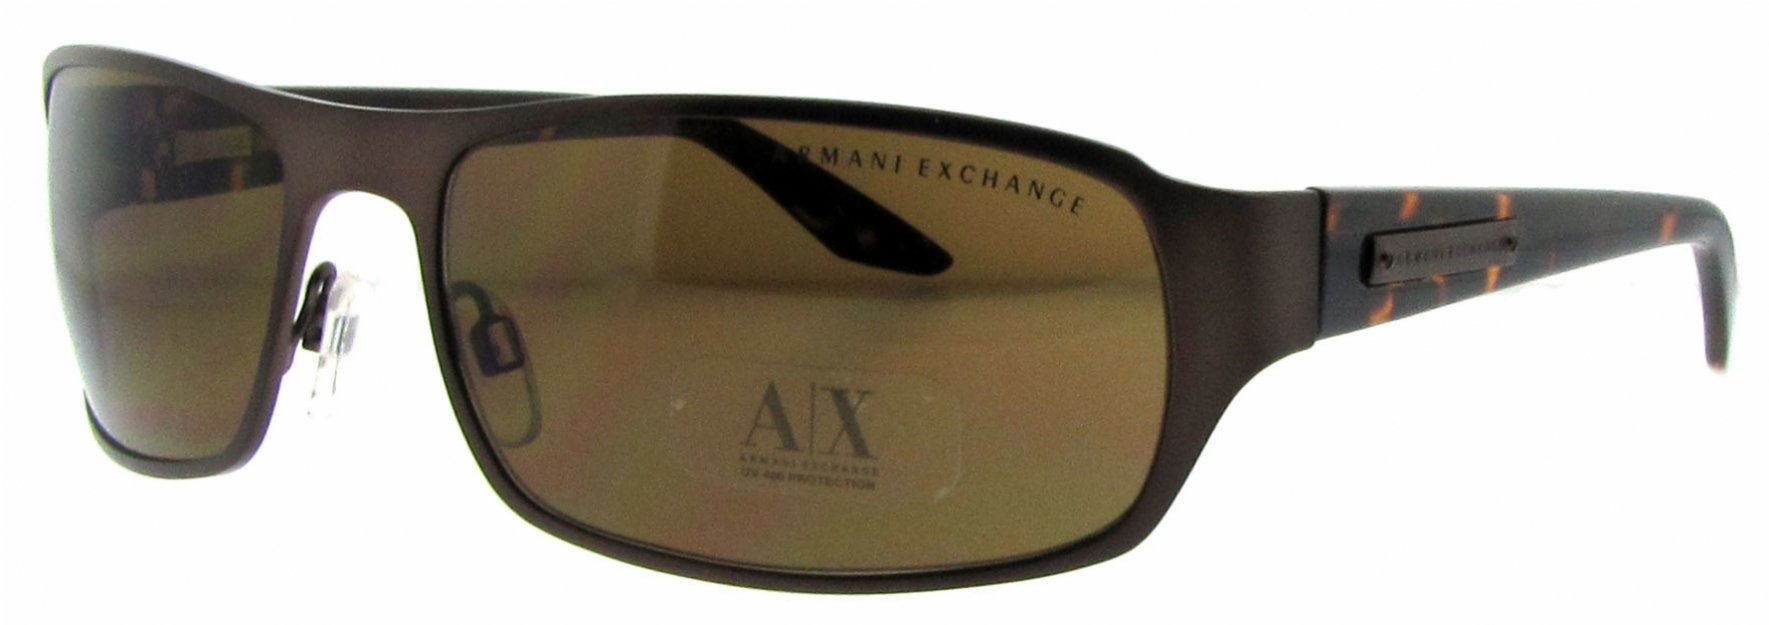 ARMANI EXCHANGE 154 NO0